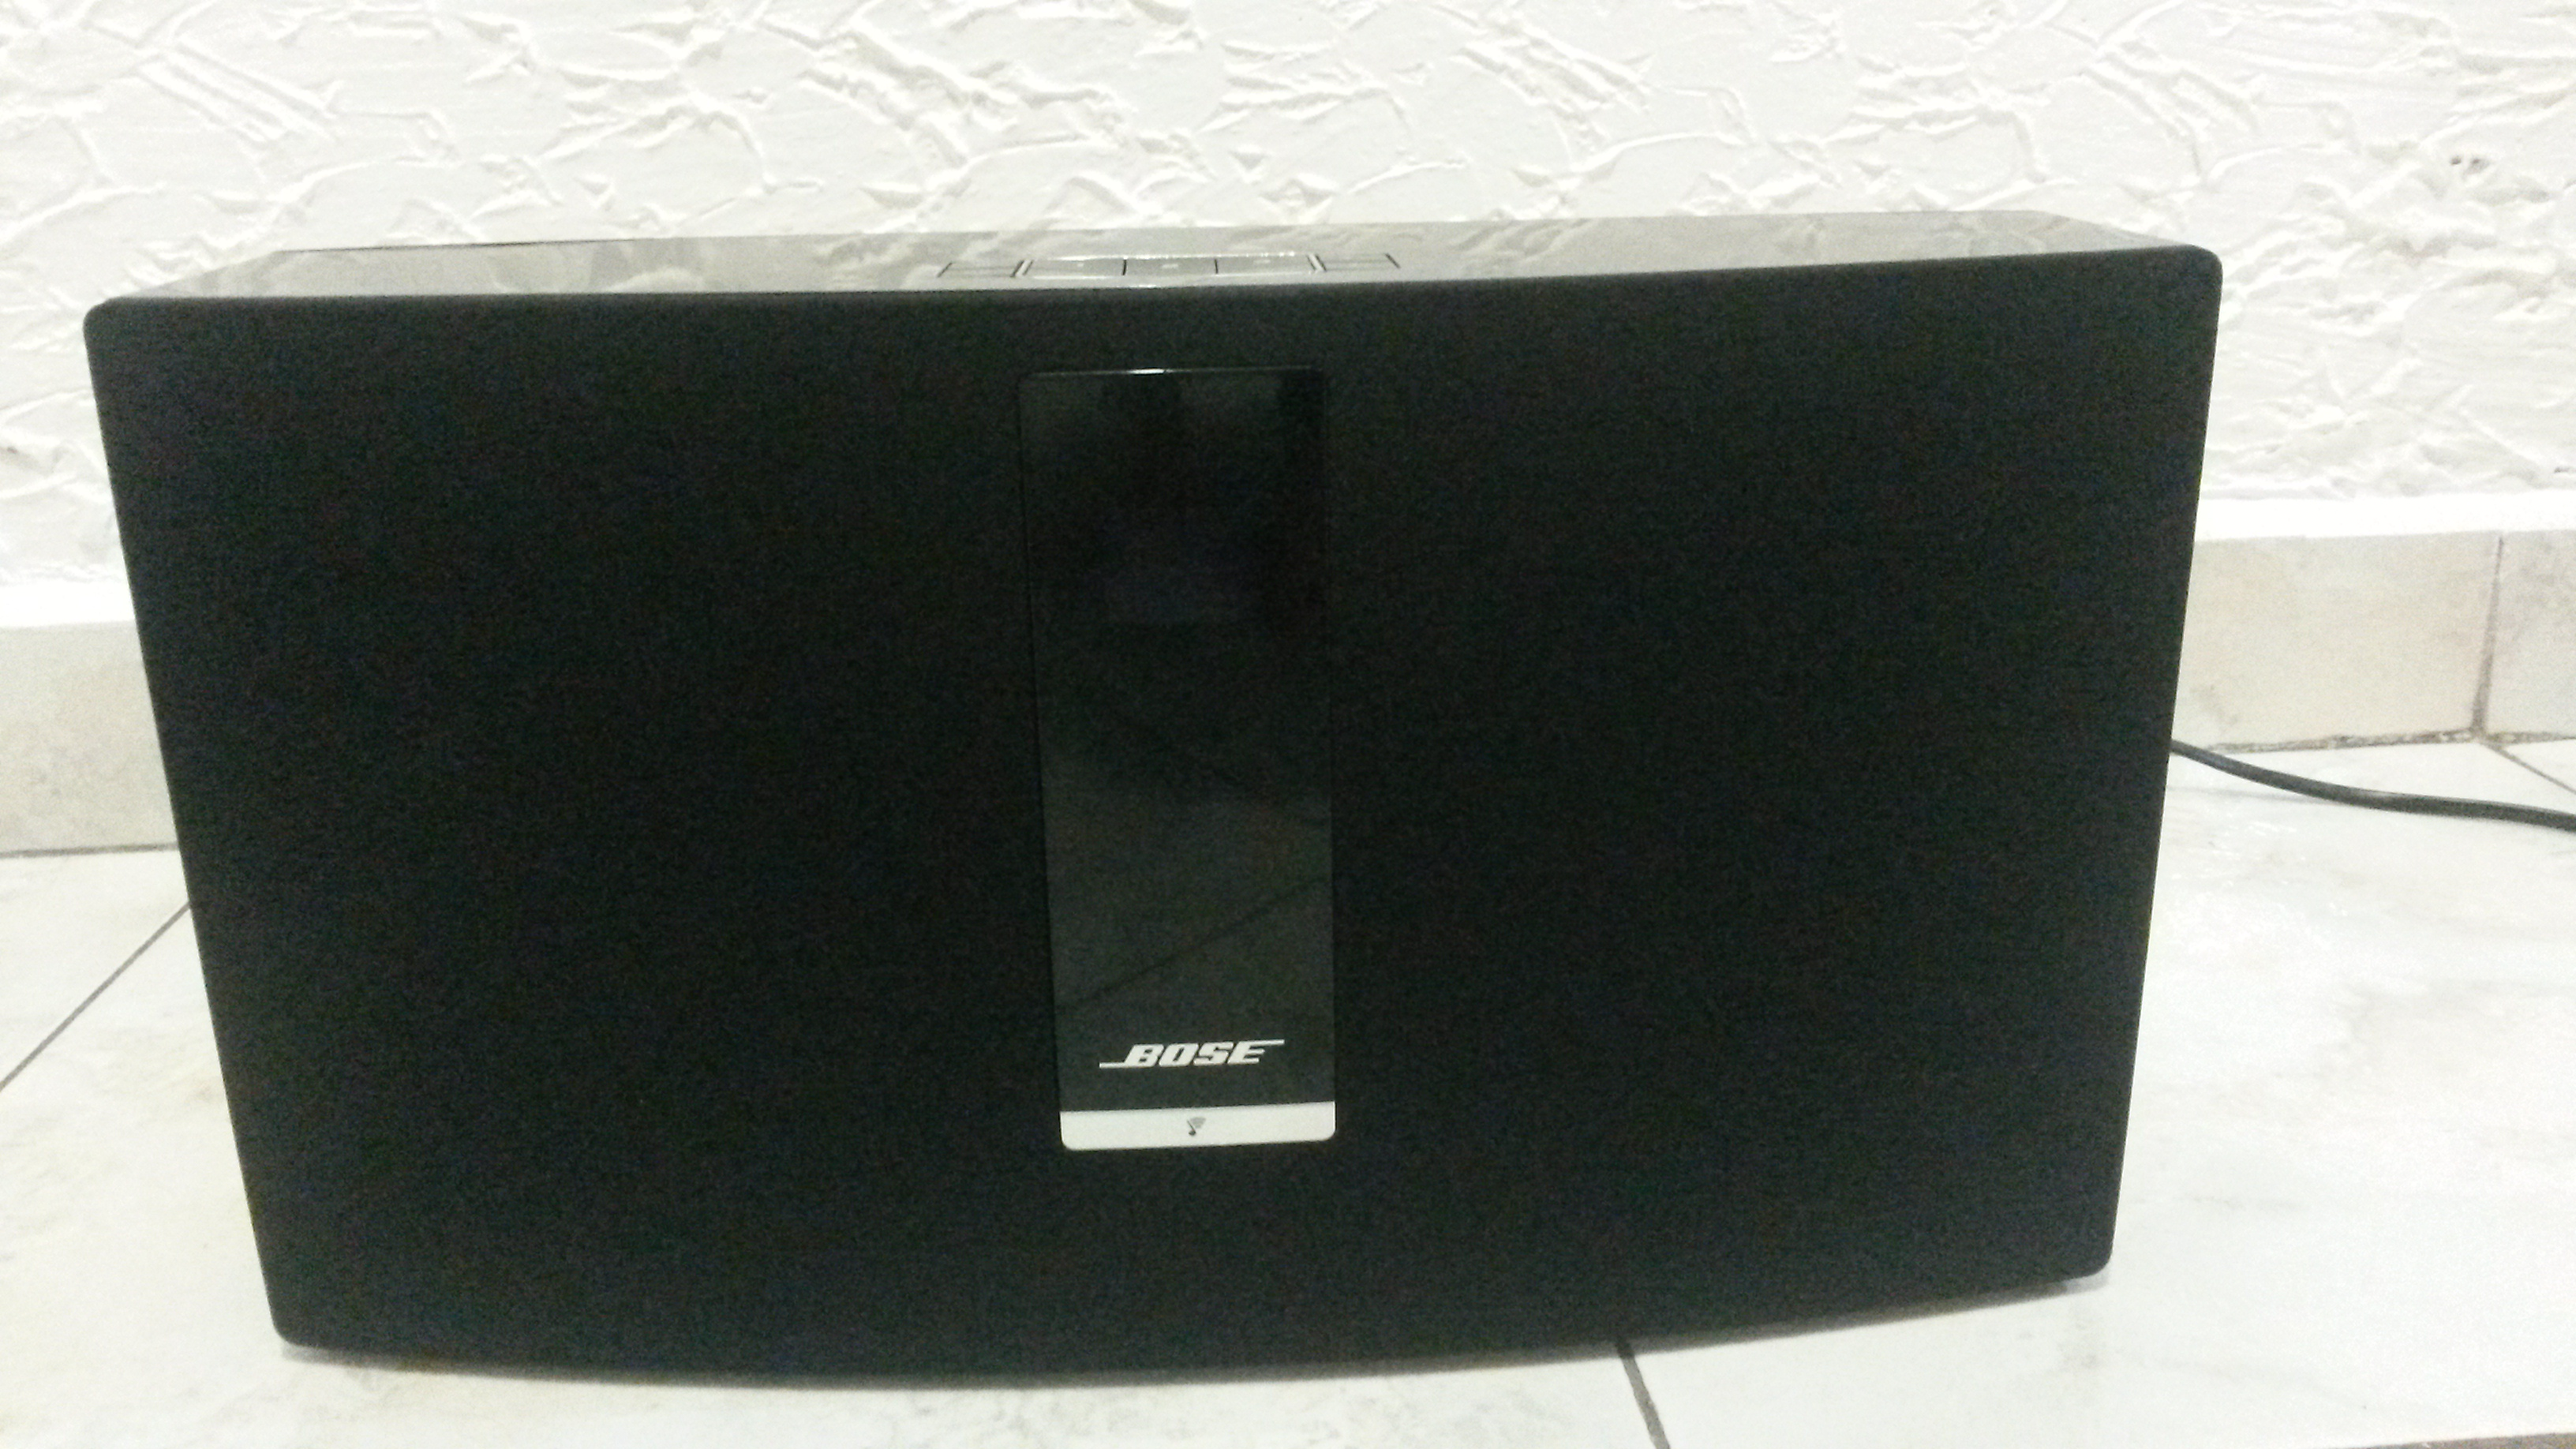 the Bose SoundTouch 30